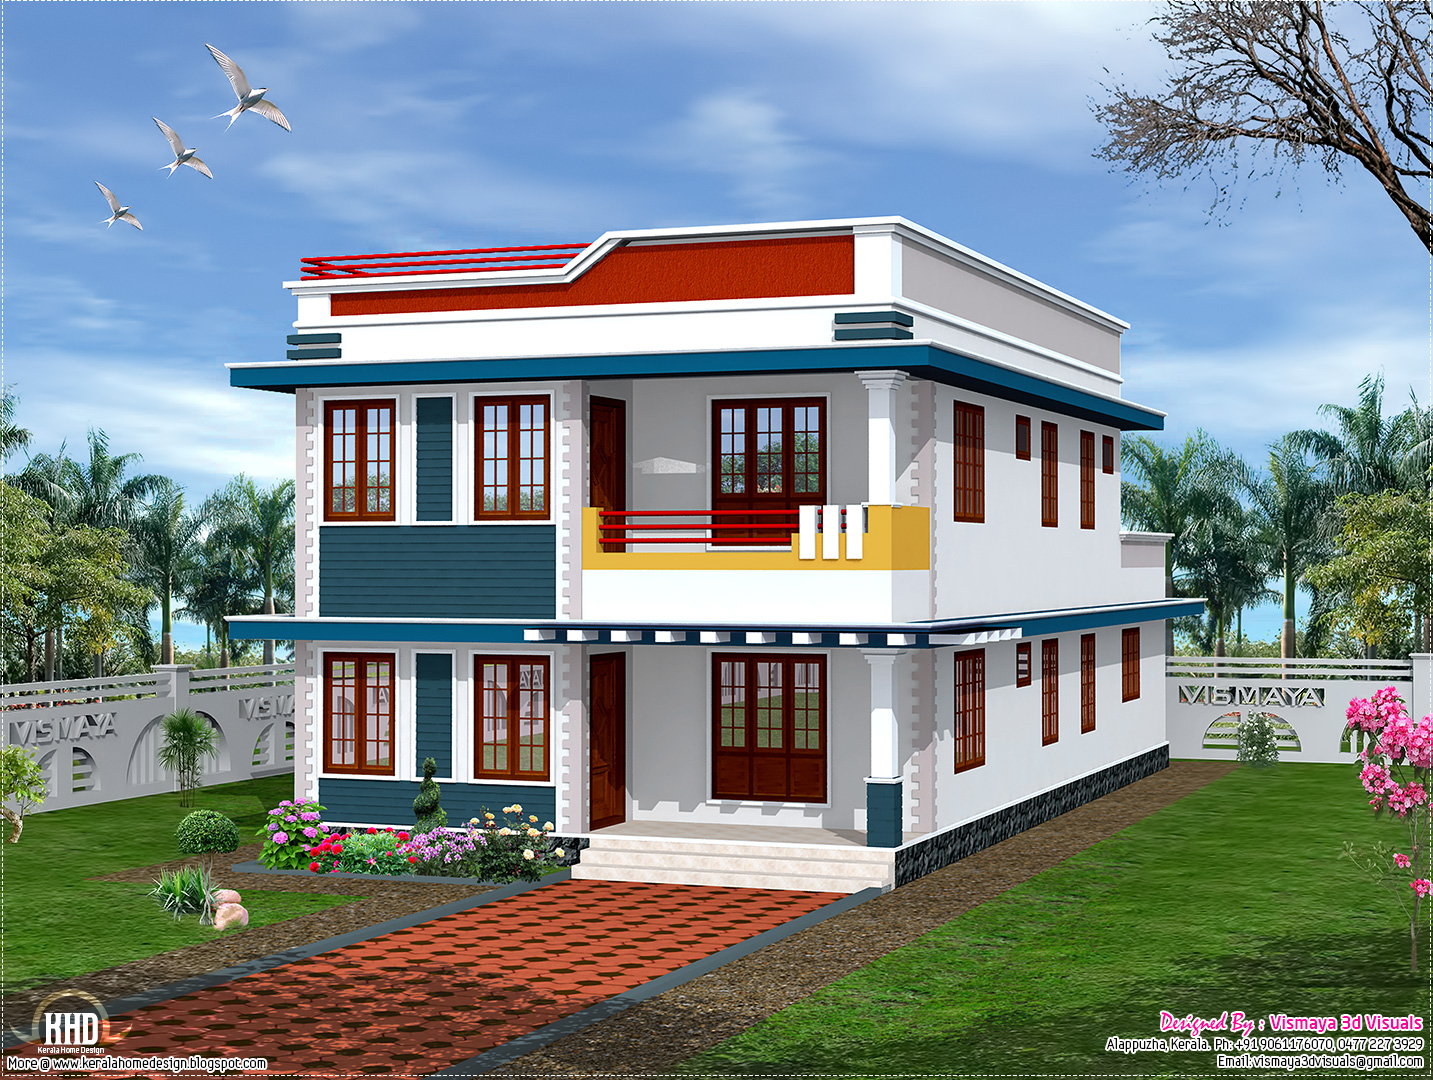 Bedroom Home Design By Vismaya 3d Visuals Ambalapuzha Alappuzha Kerala